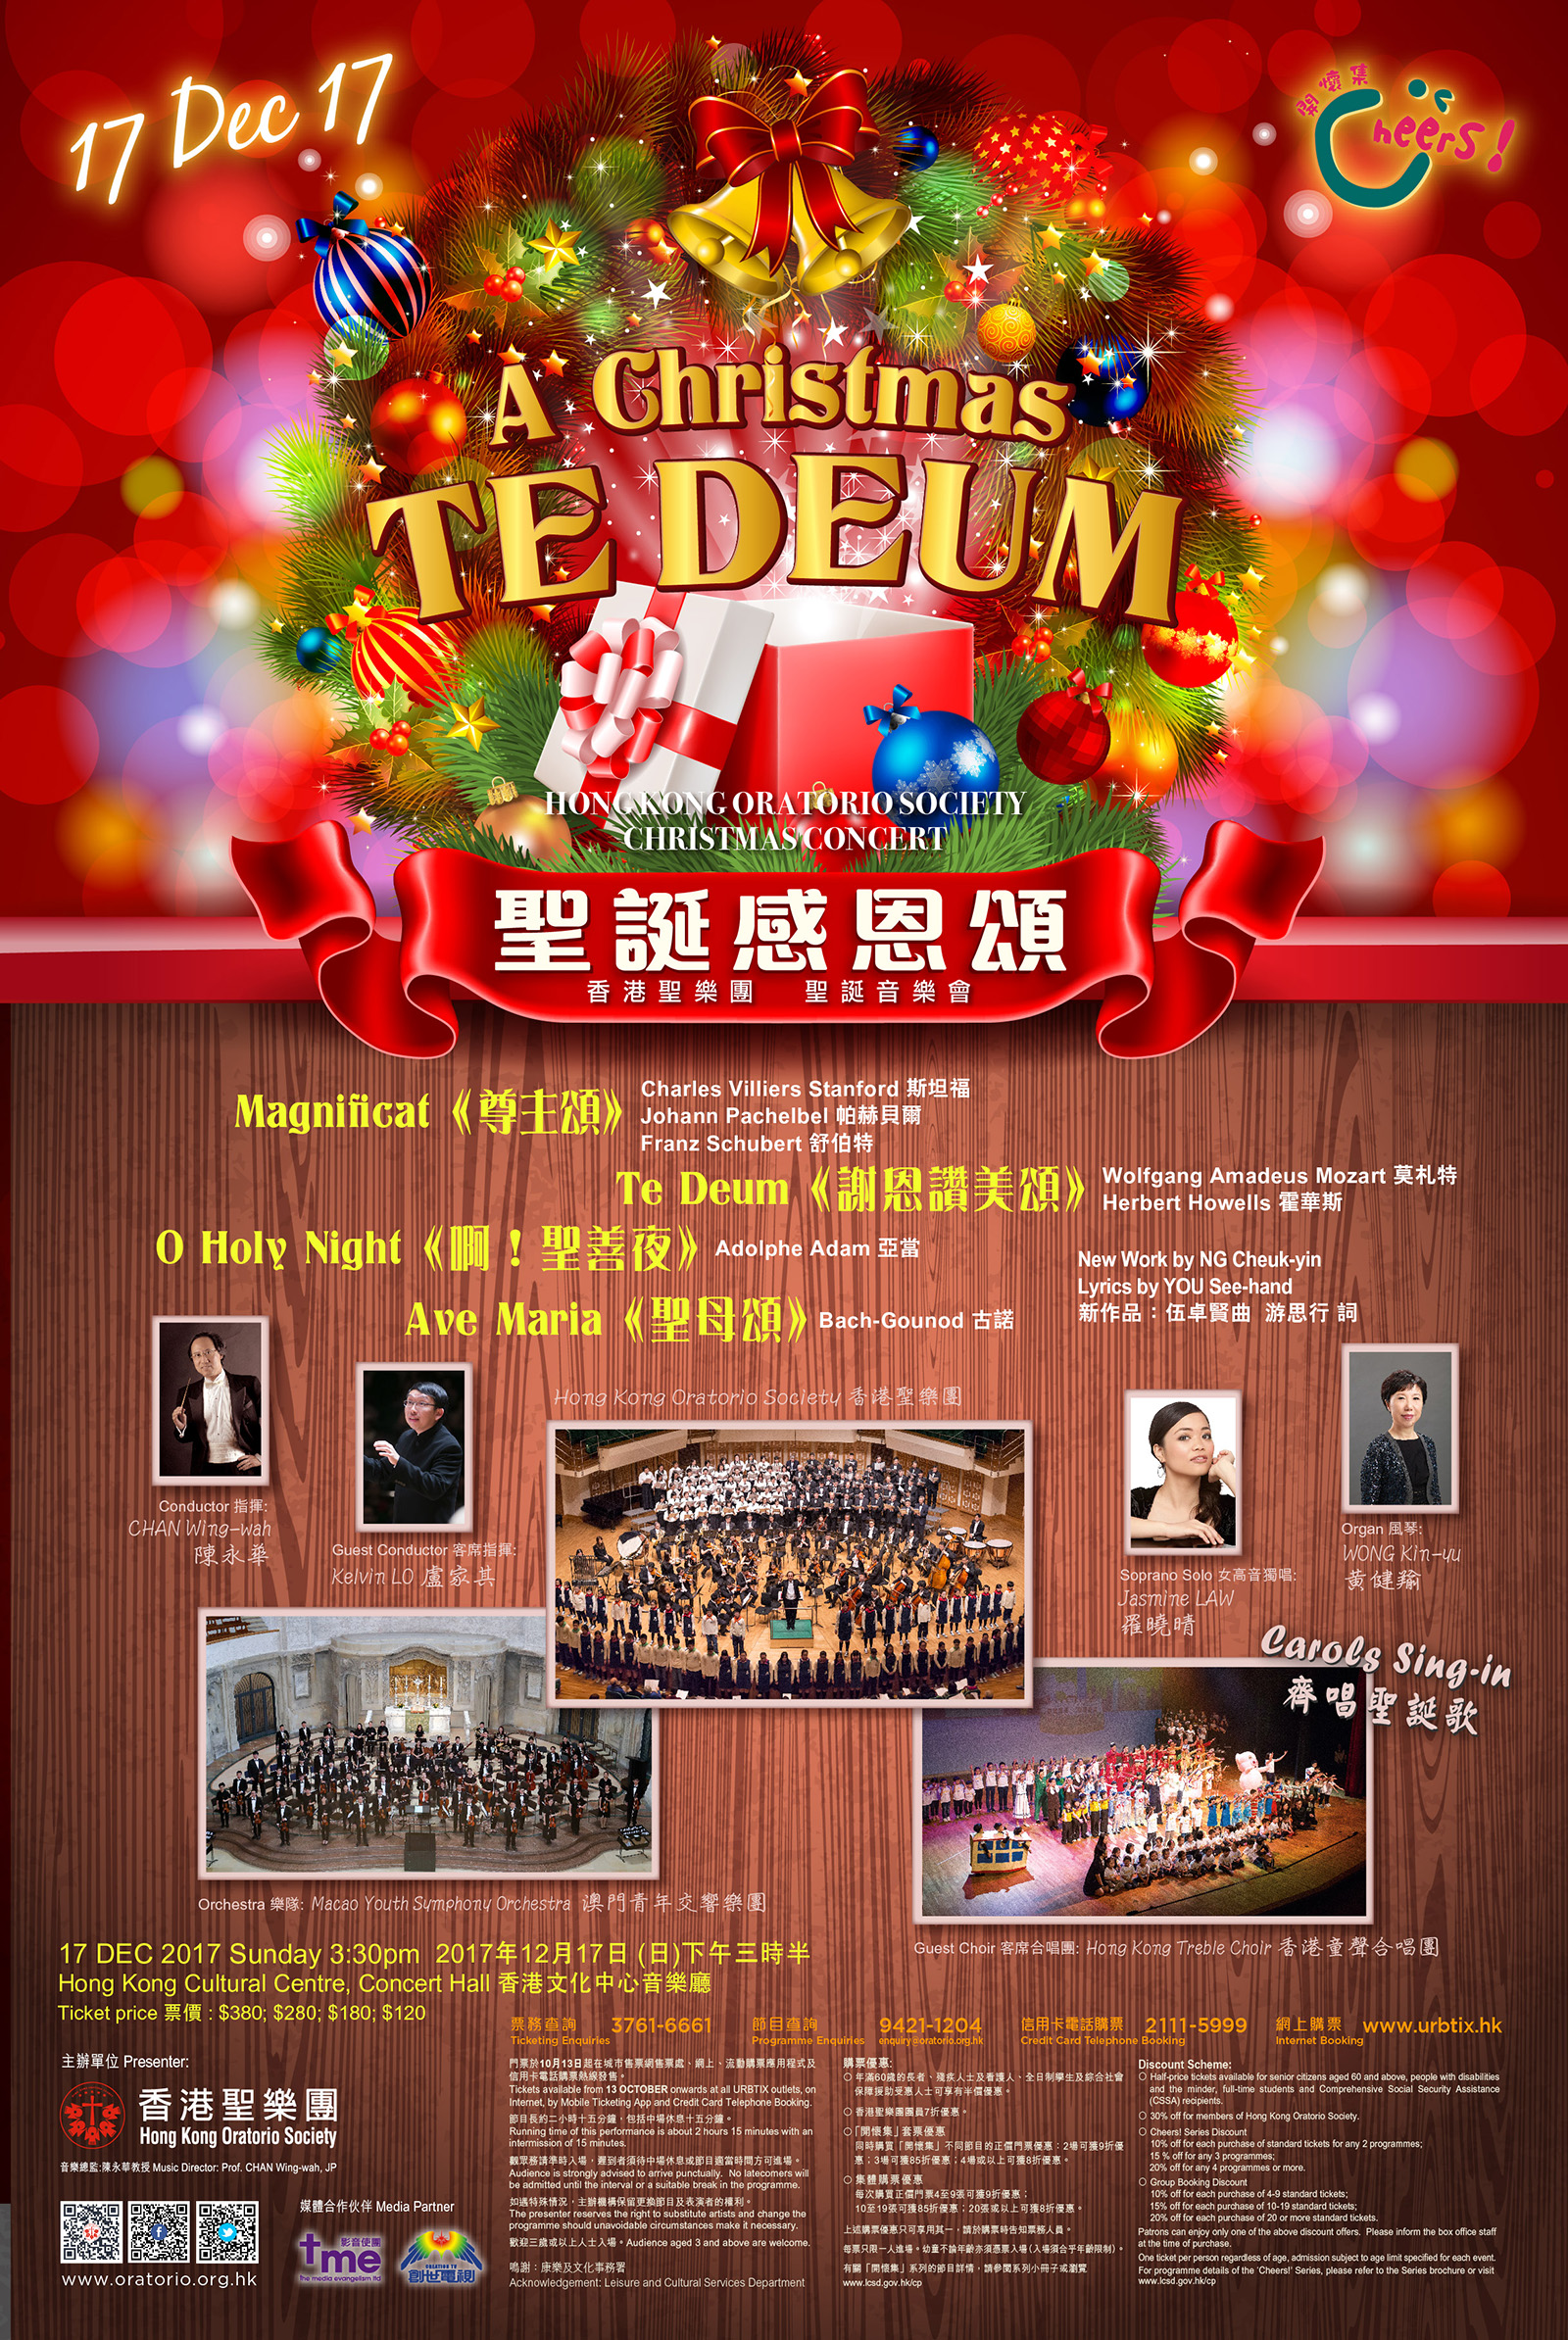 Upcoming Concert